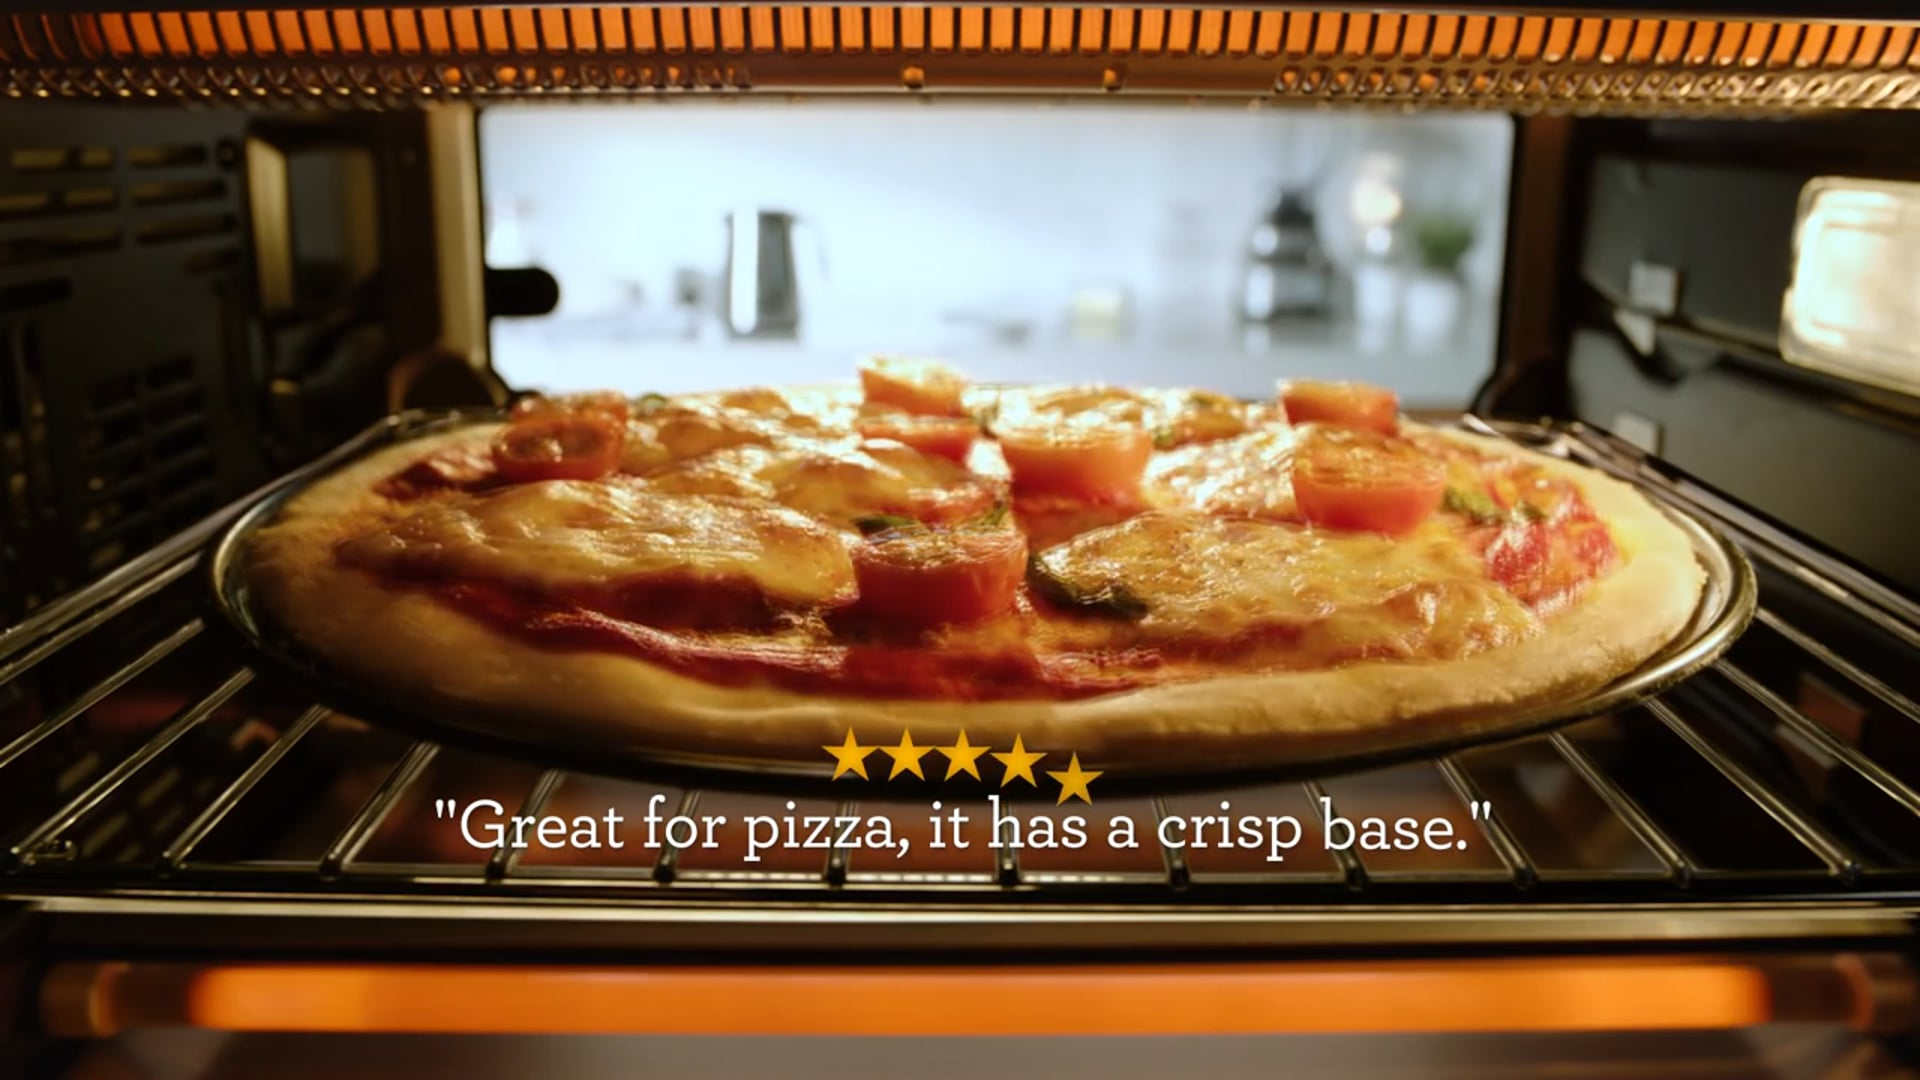 Breville Smart Oven - The Best Tool for Your Kitchen